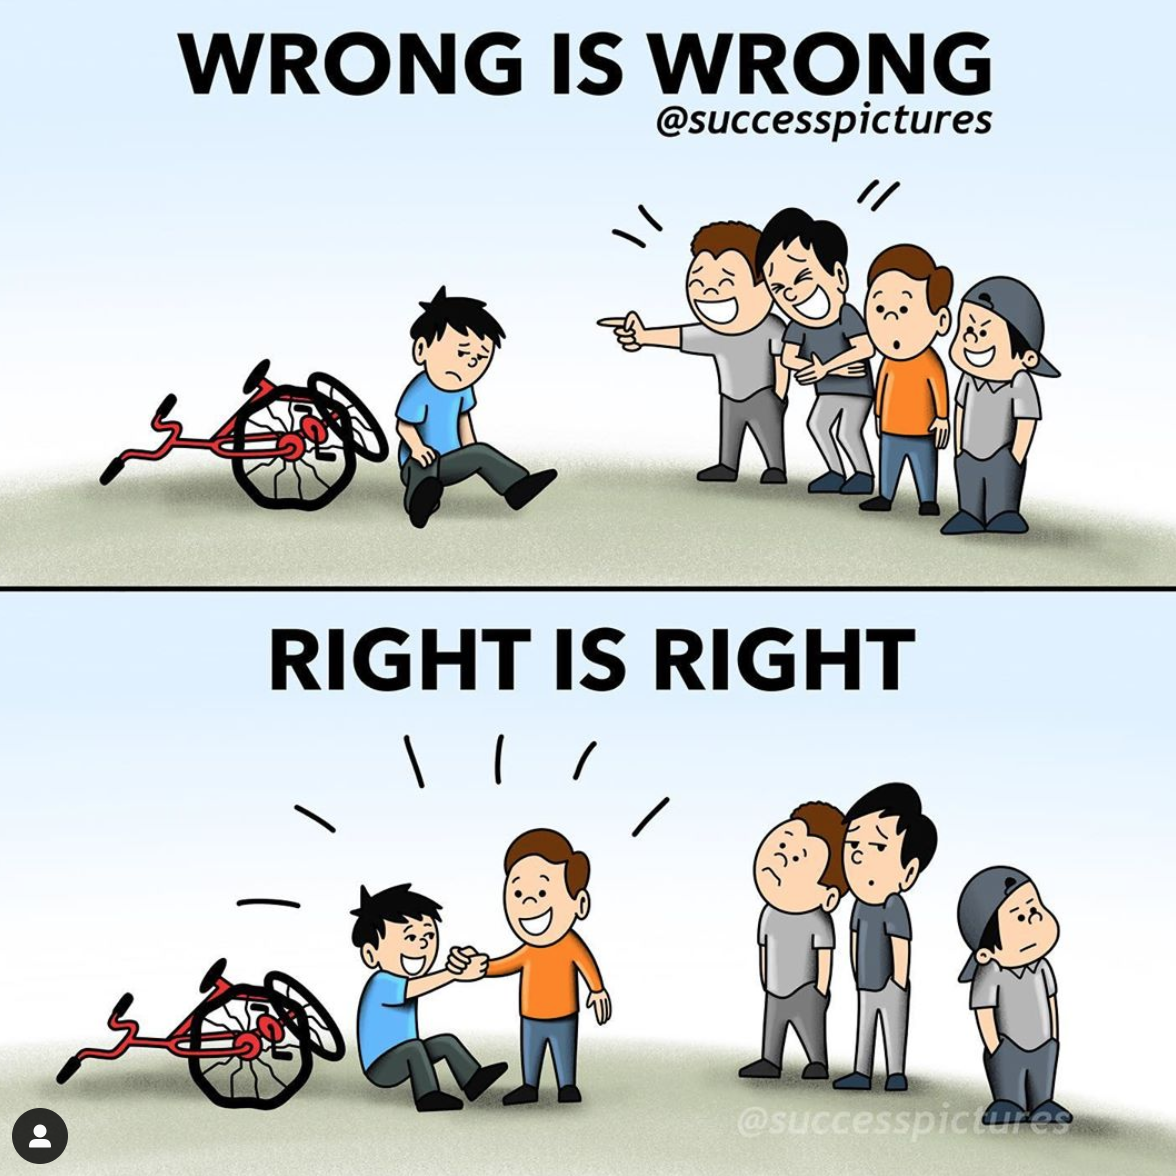 WRONG IS WRONG @successpictures https://inspirational.ly